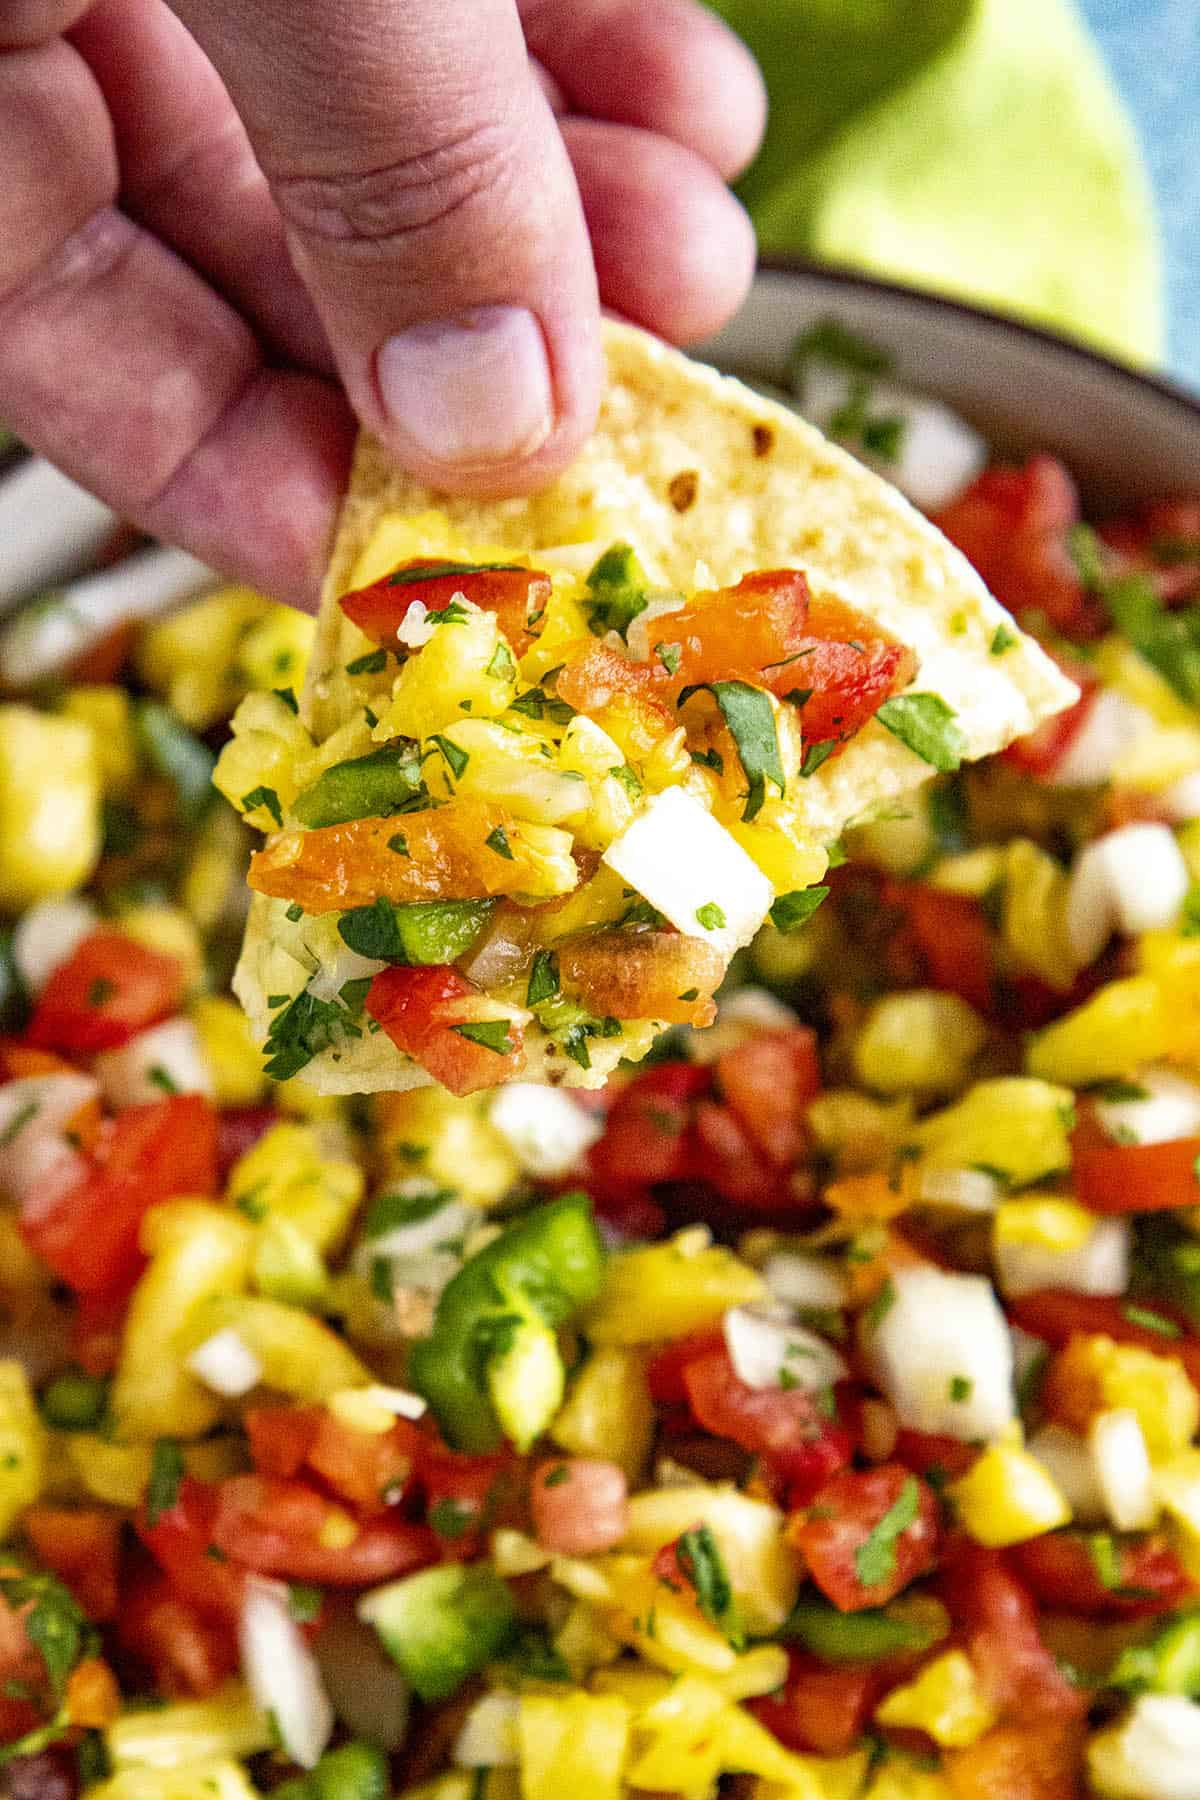 Spicy Pineapple Salsa with habanero peppers on a chip